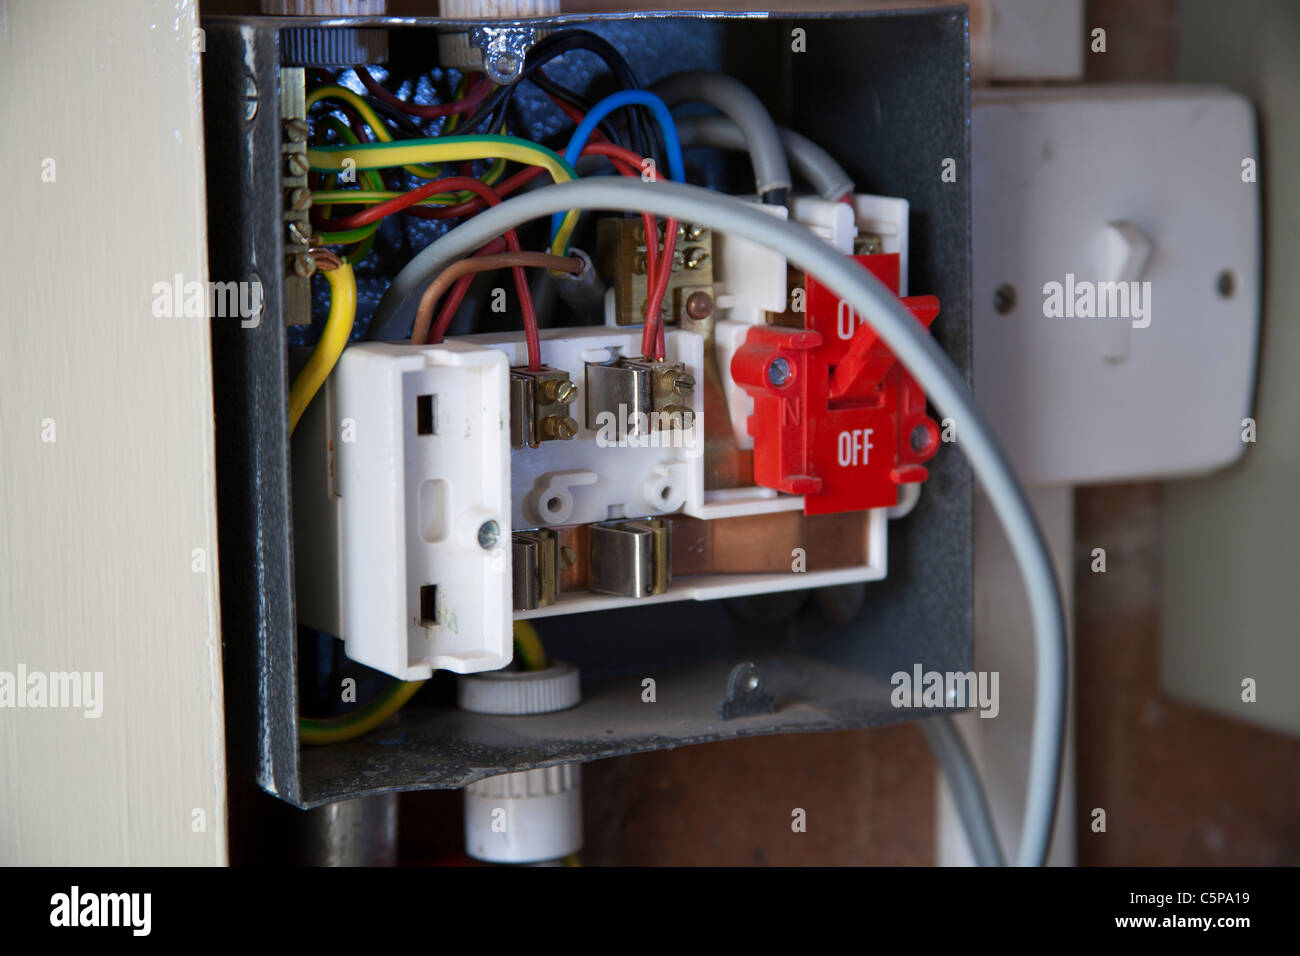 Consumer Unit Stock Photos Images Alamy Wiring Box Qualified Electrician Installing A Being Wired Image